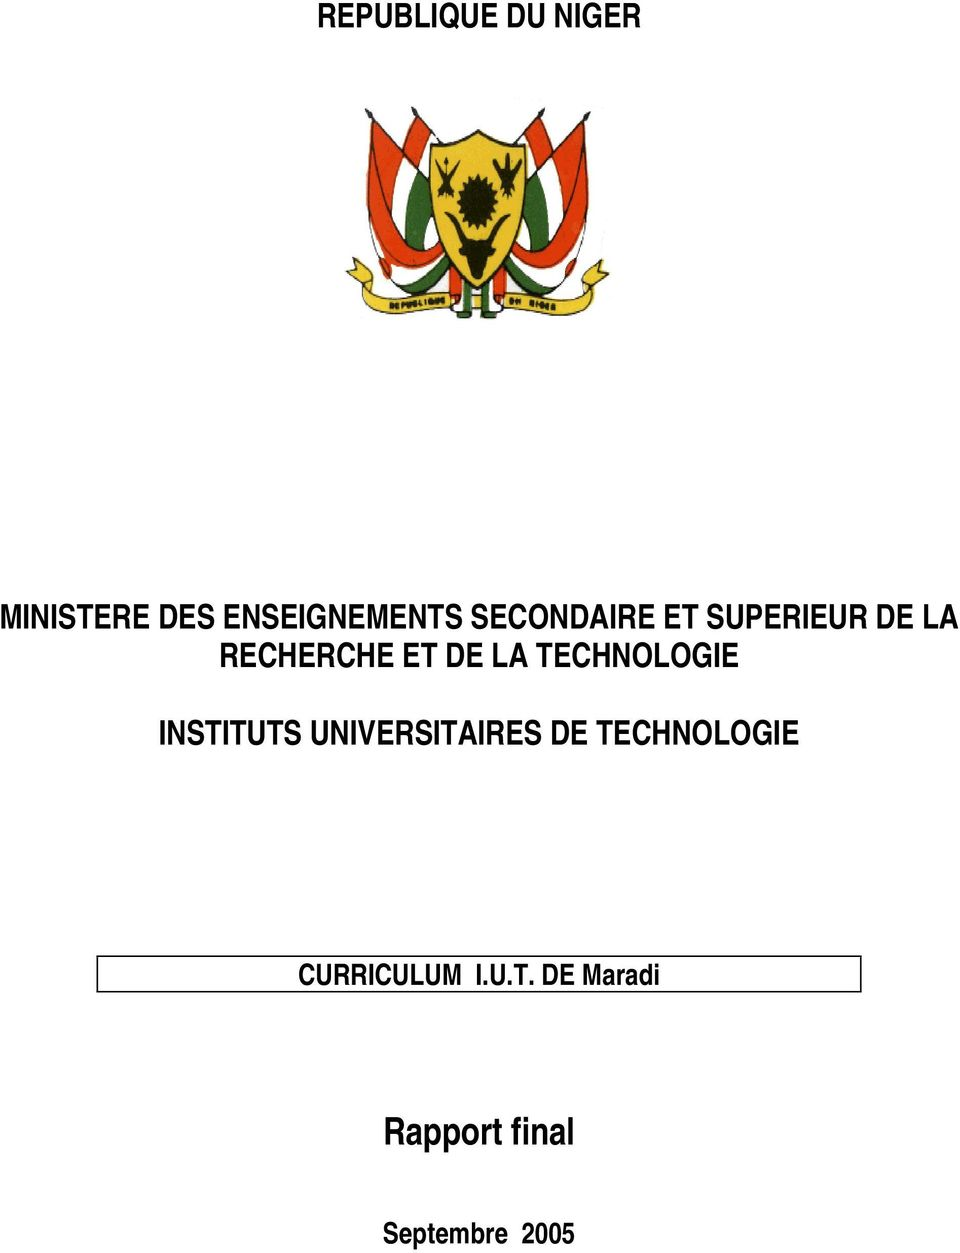 TECHNOLOGIE INSTITUTS UNIVERSITAIRES DE TECHNOLOGIE